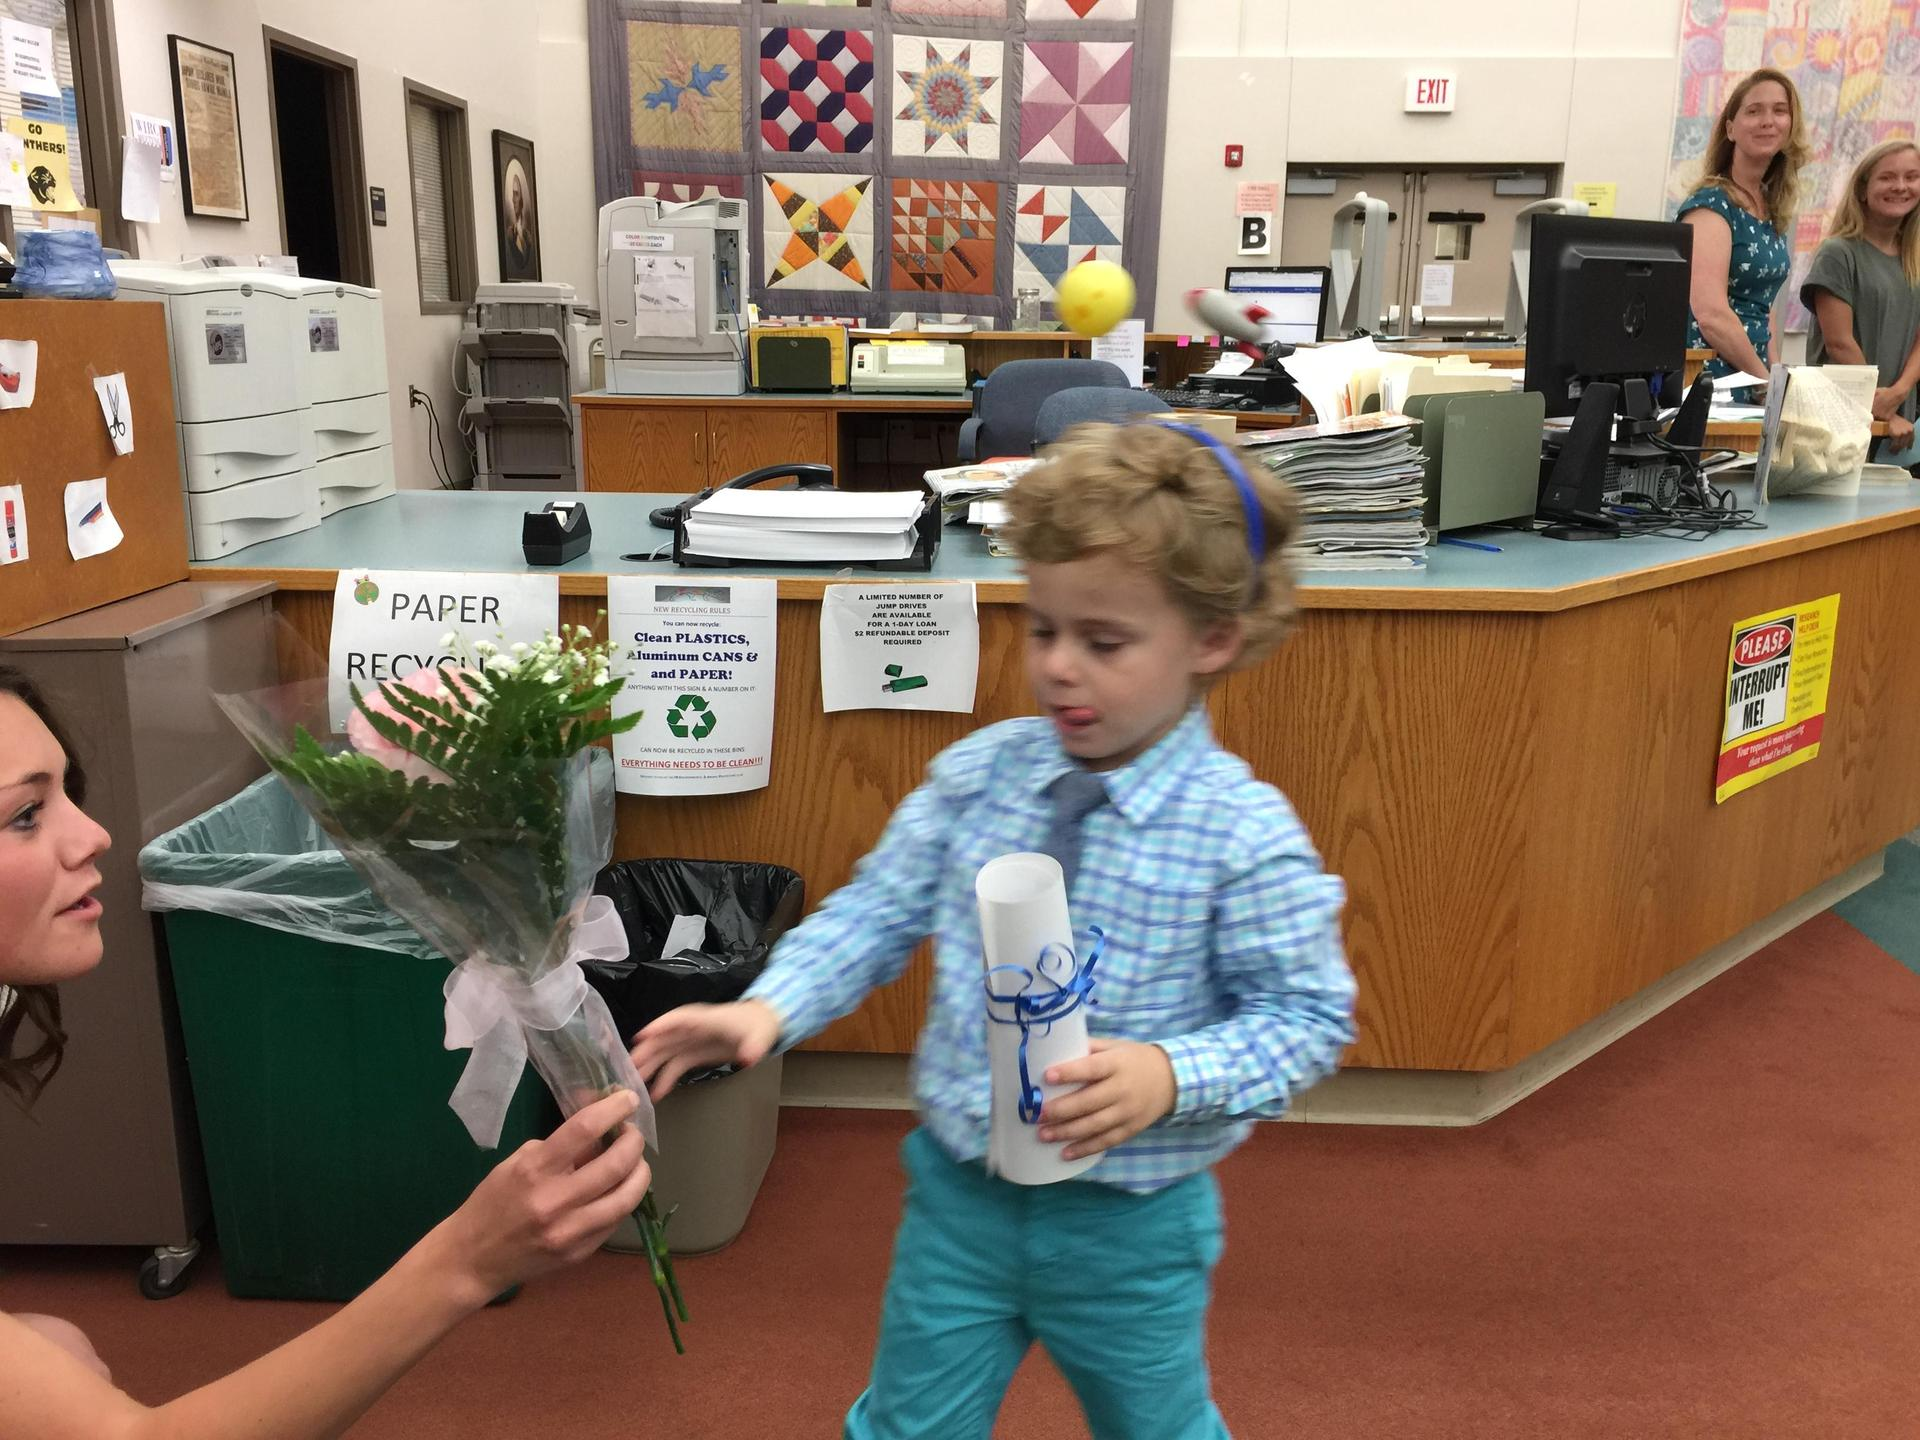 Student greets teacher at the end of year graduation for PlaySchool.